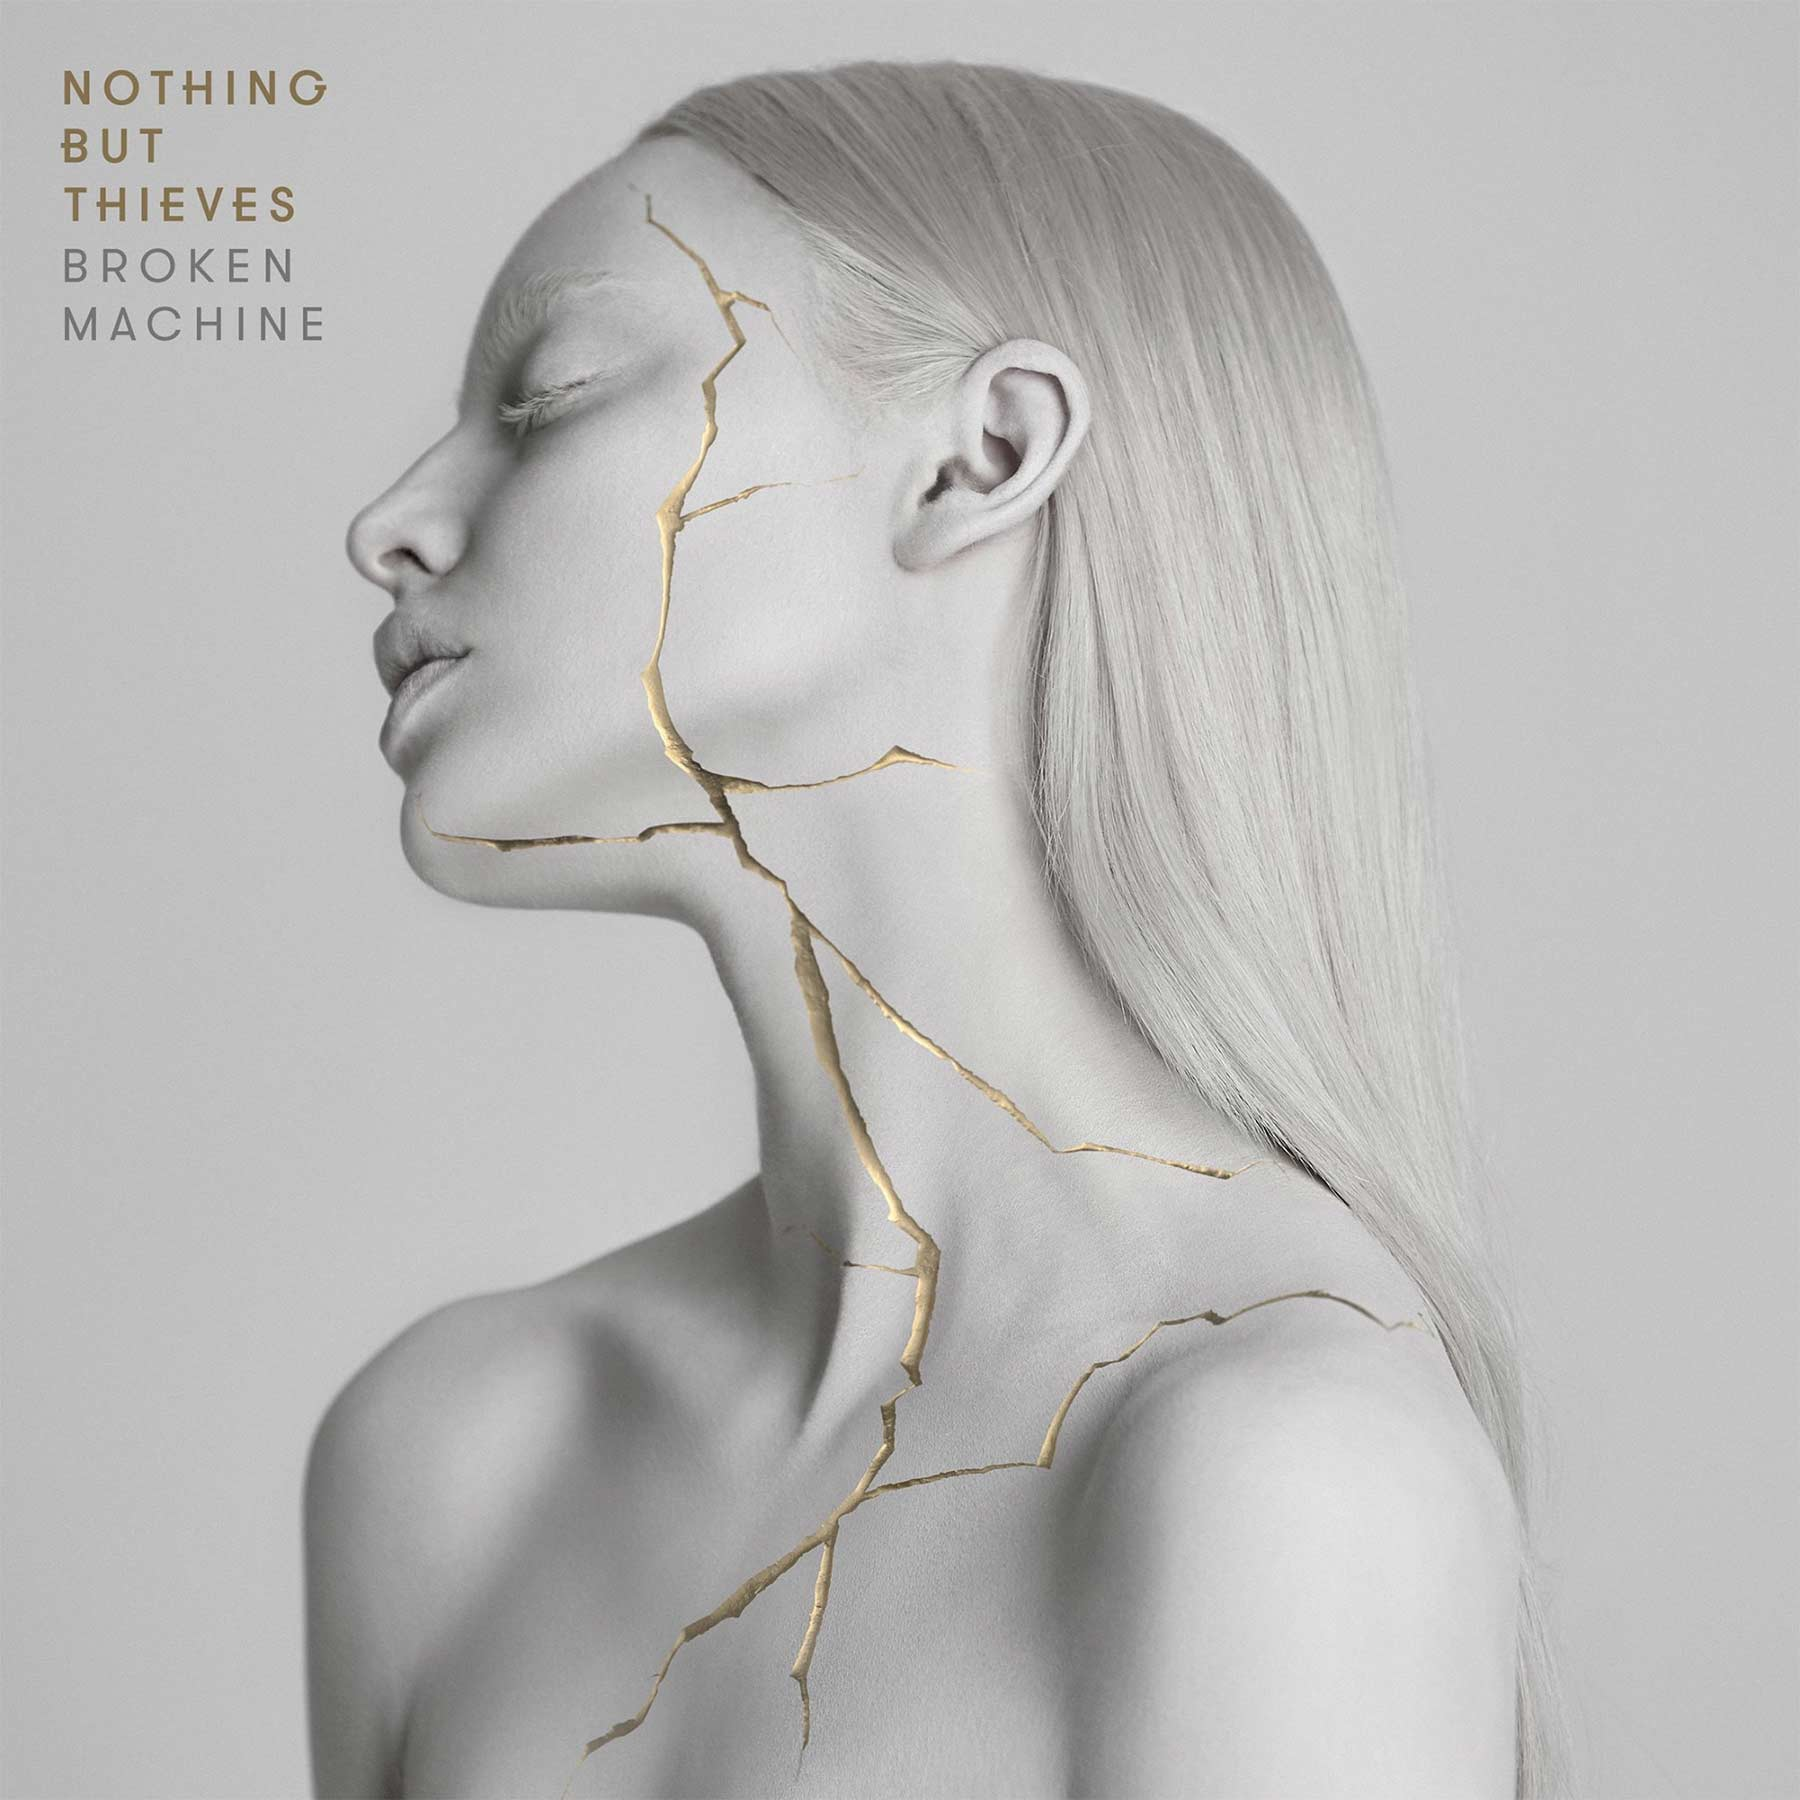 Nothing But Thieves - Sorry nothing-but-thieves_broken-machine-album-cover